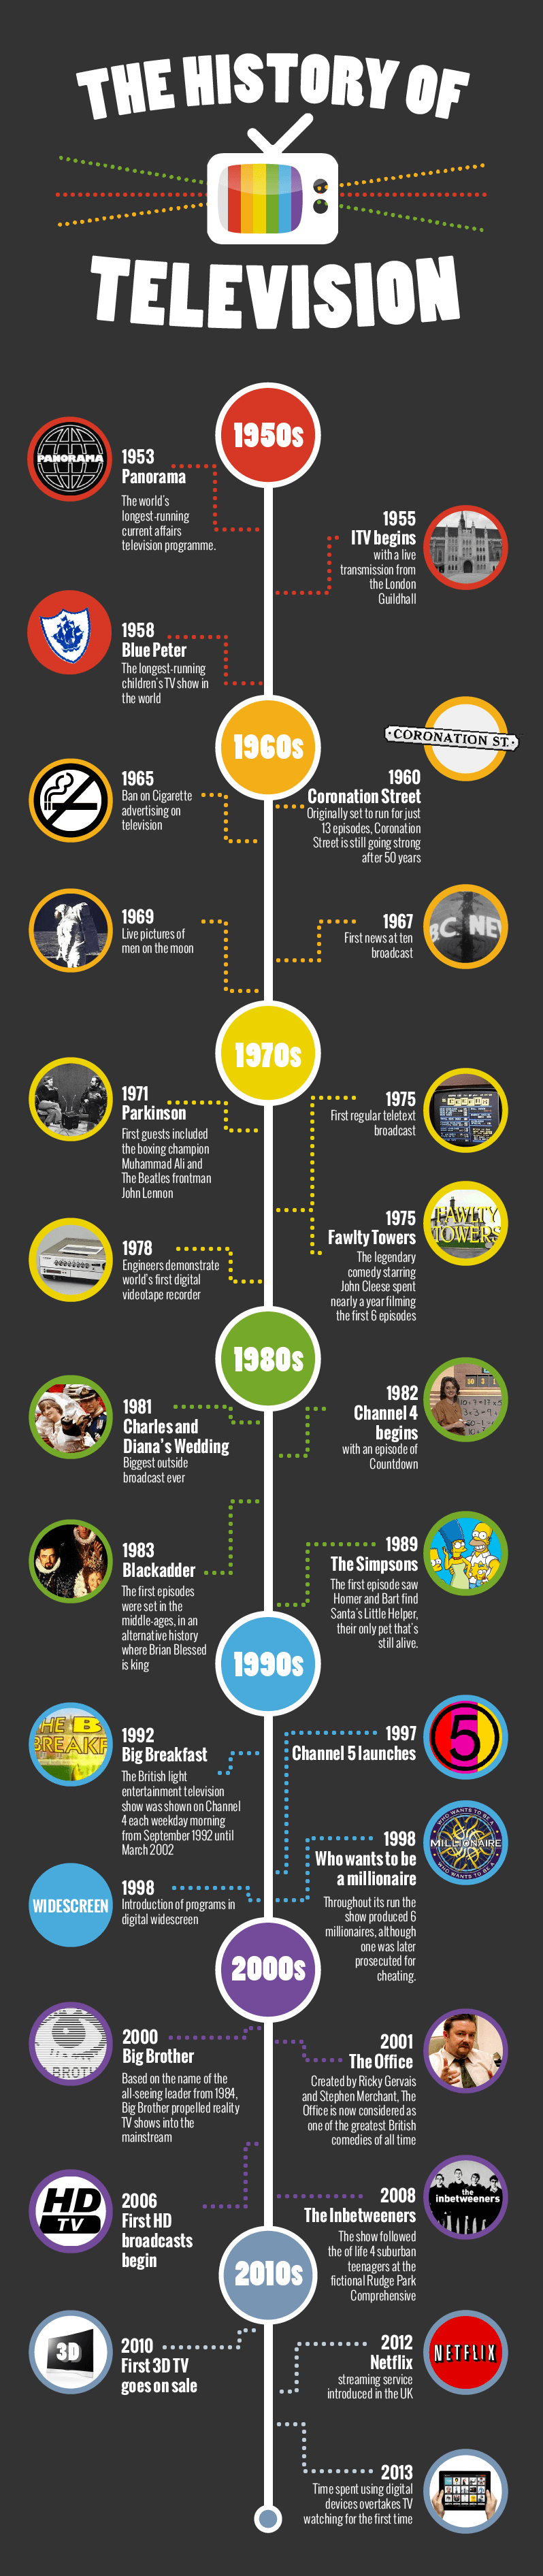 History of television | ADS Digital